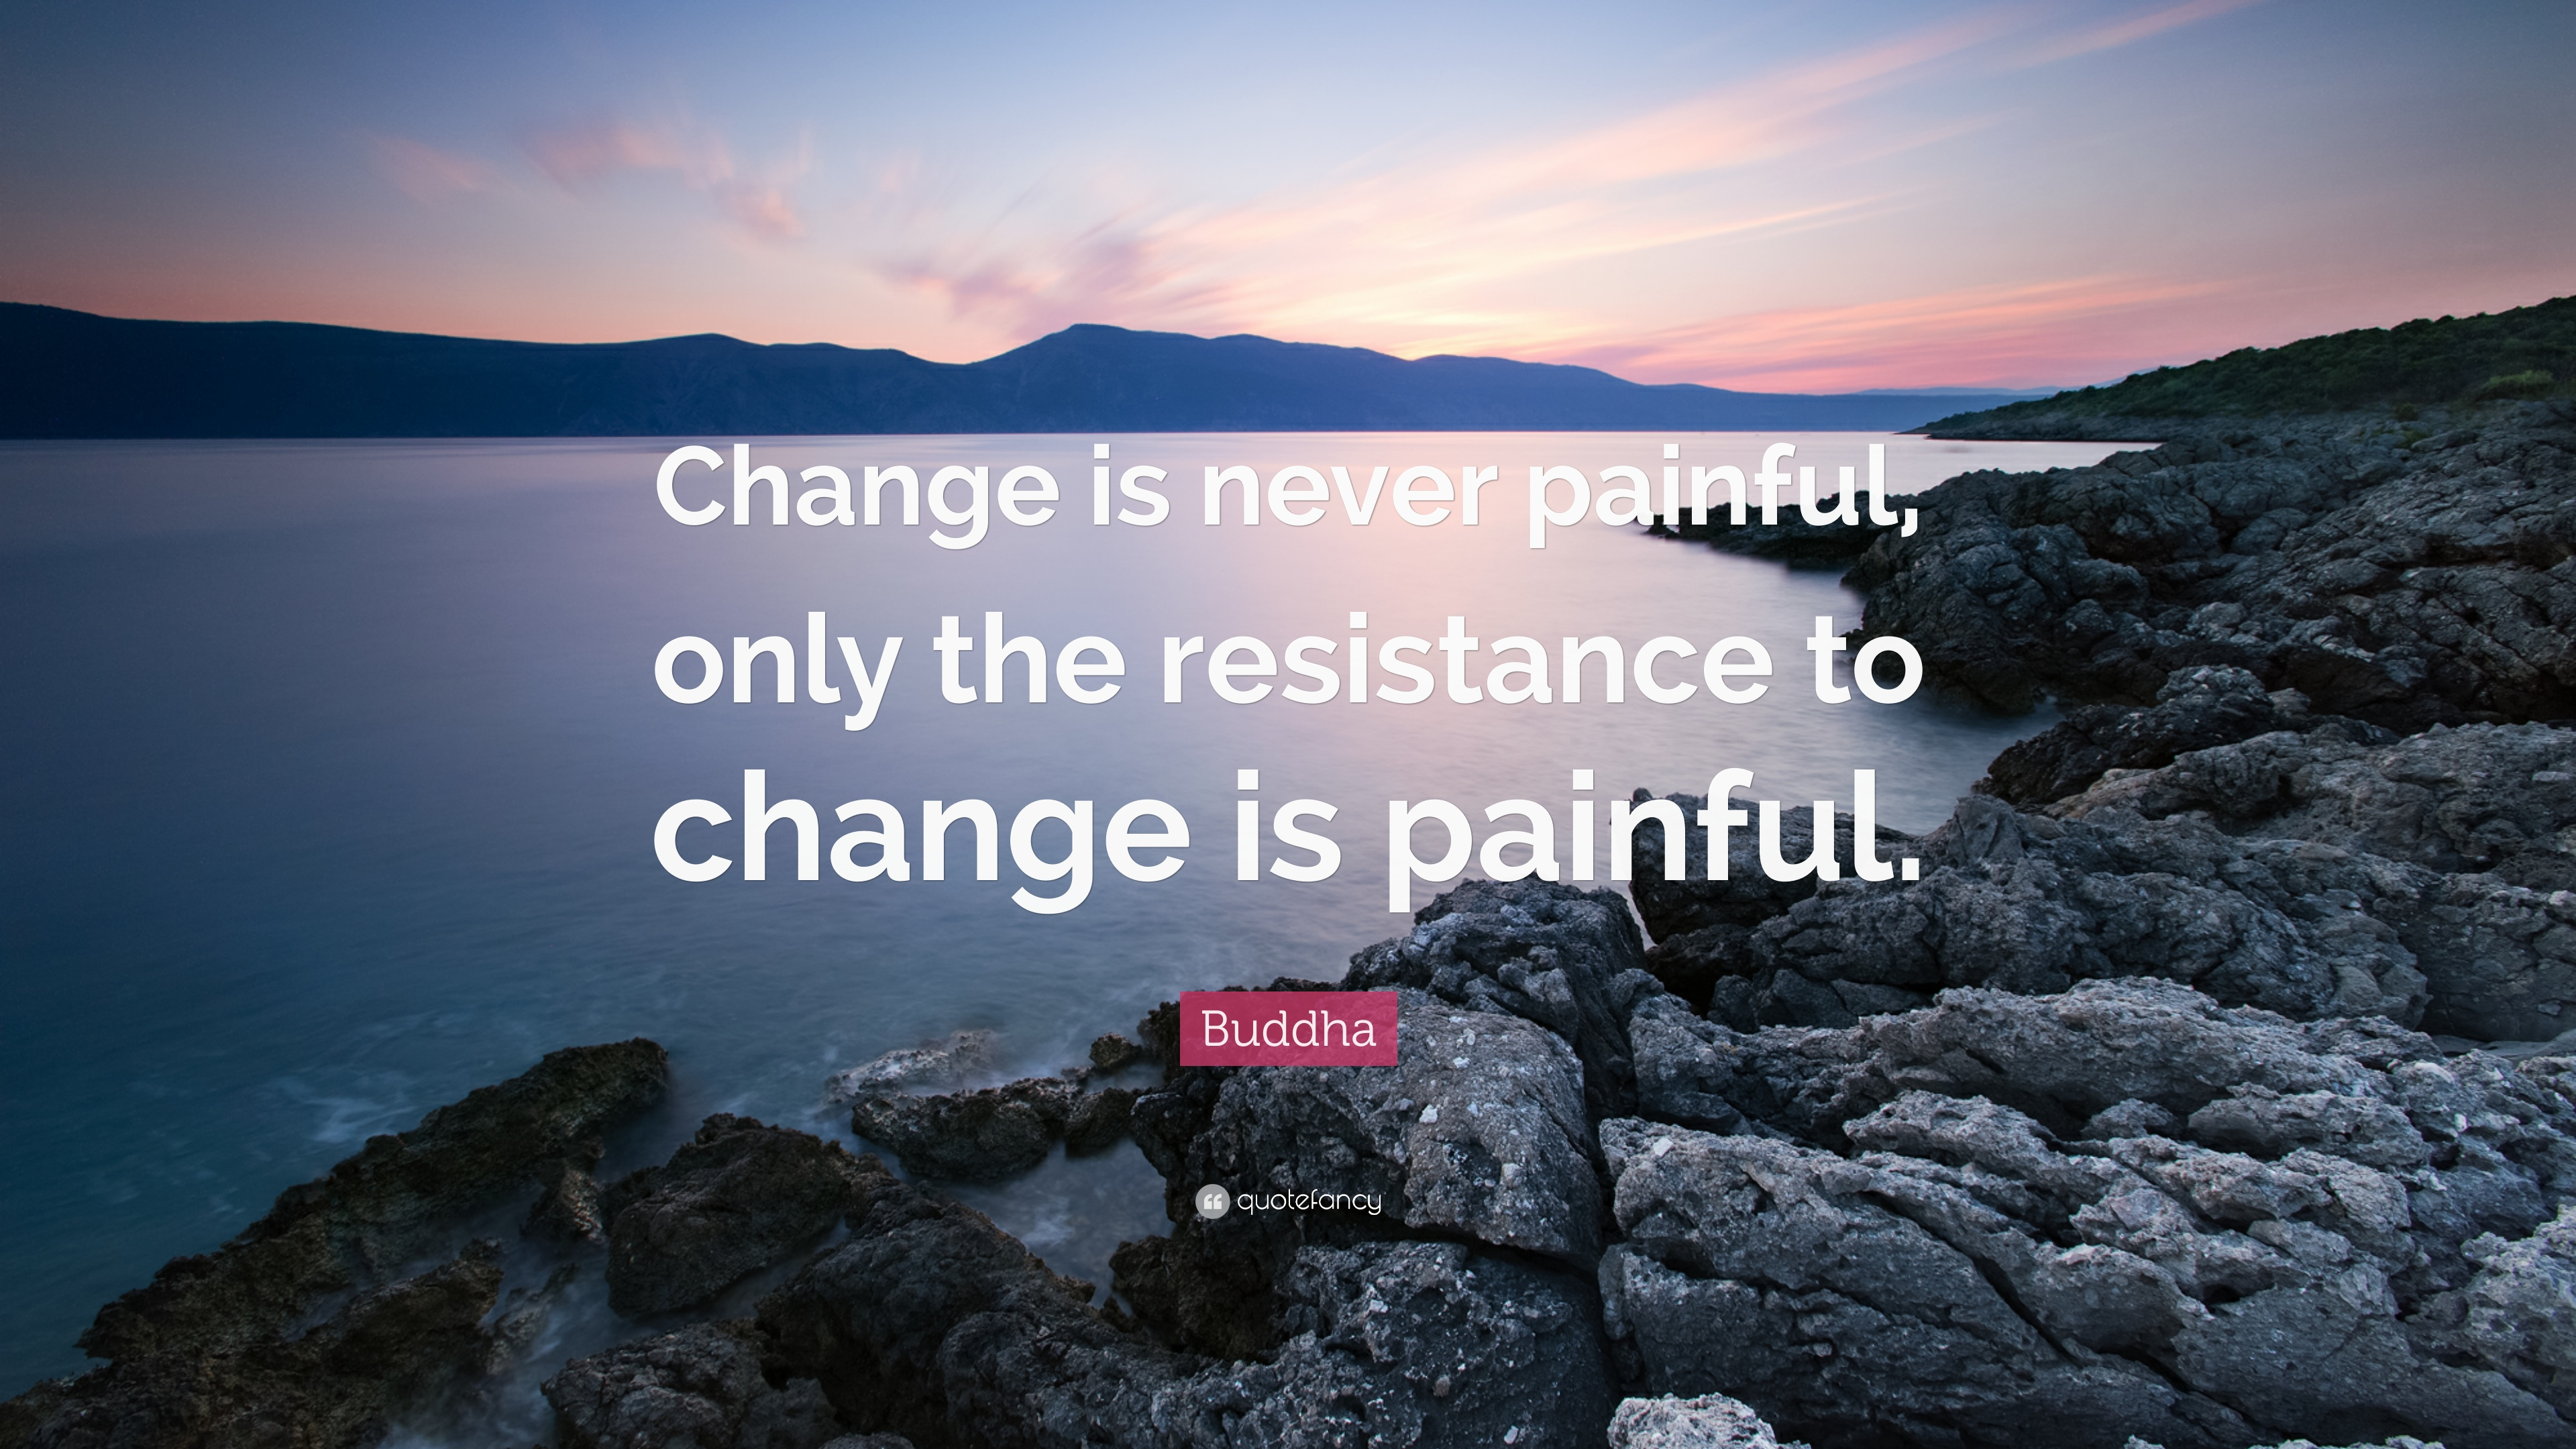 buddha quote change is never painful only the resistance to change is painful